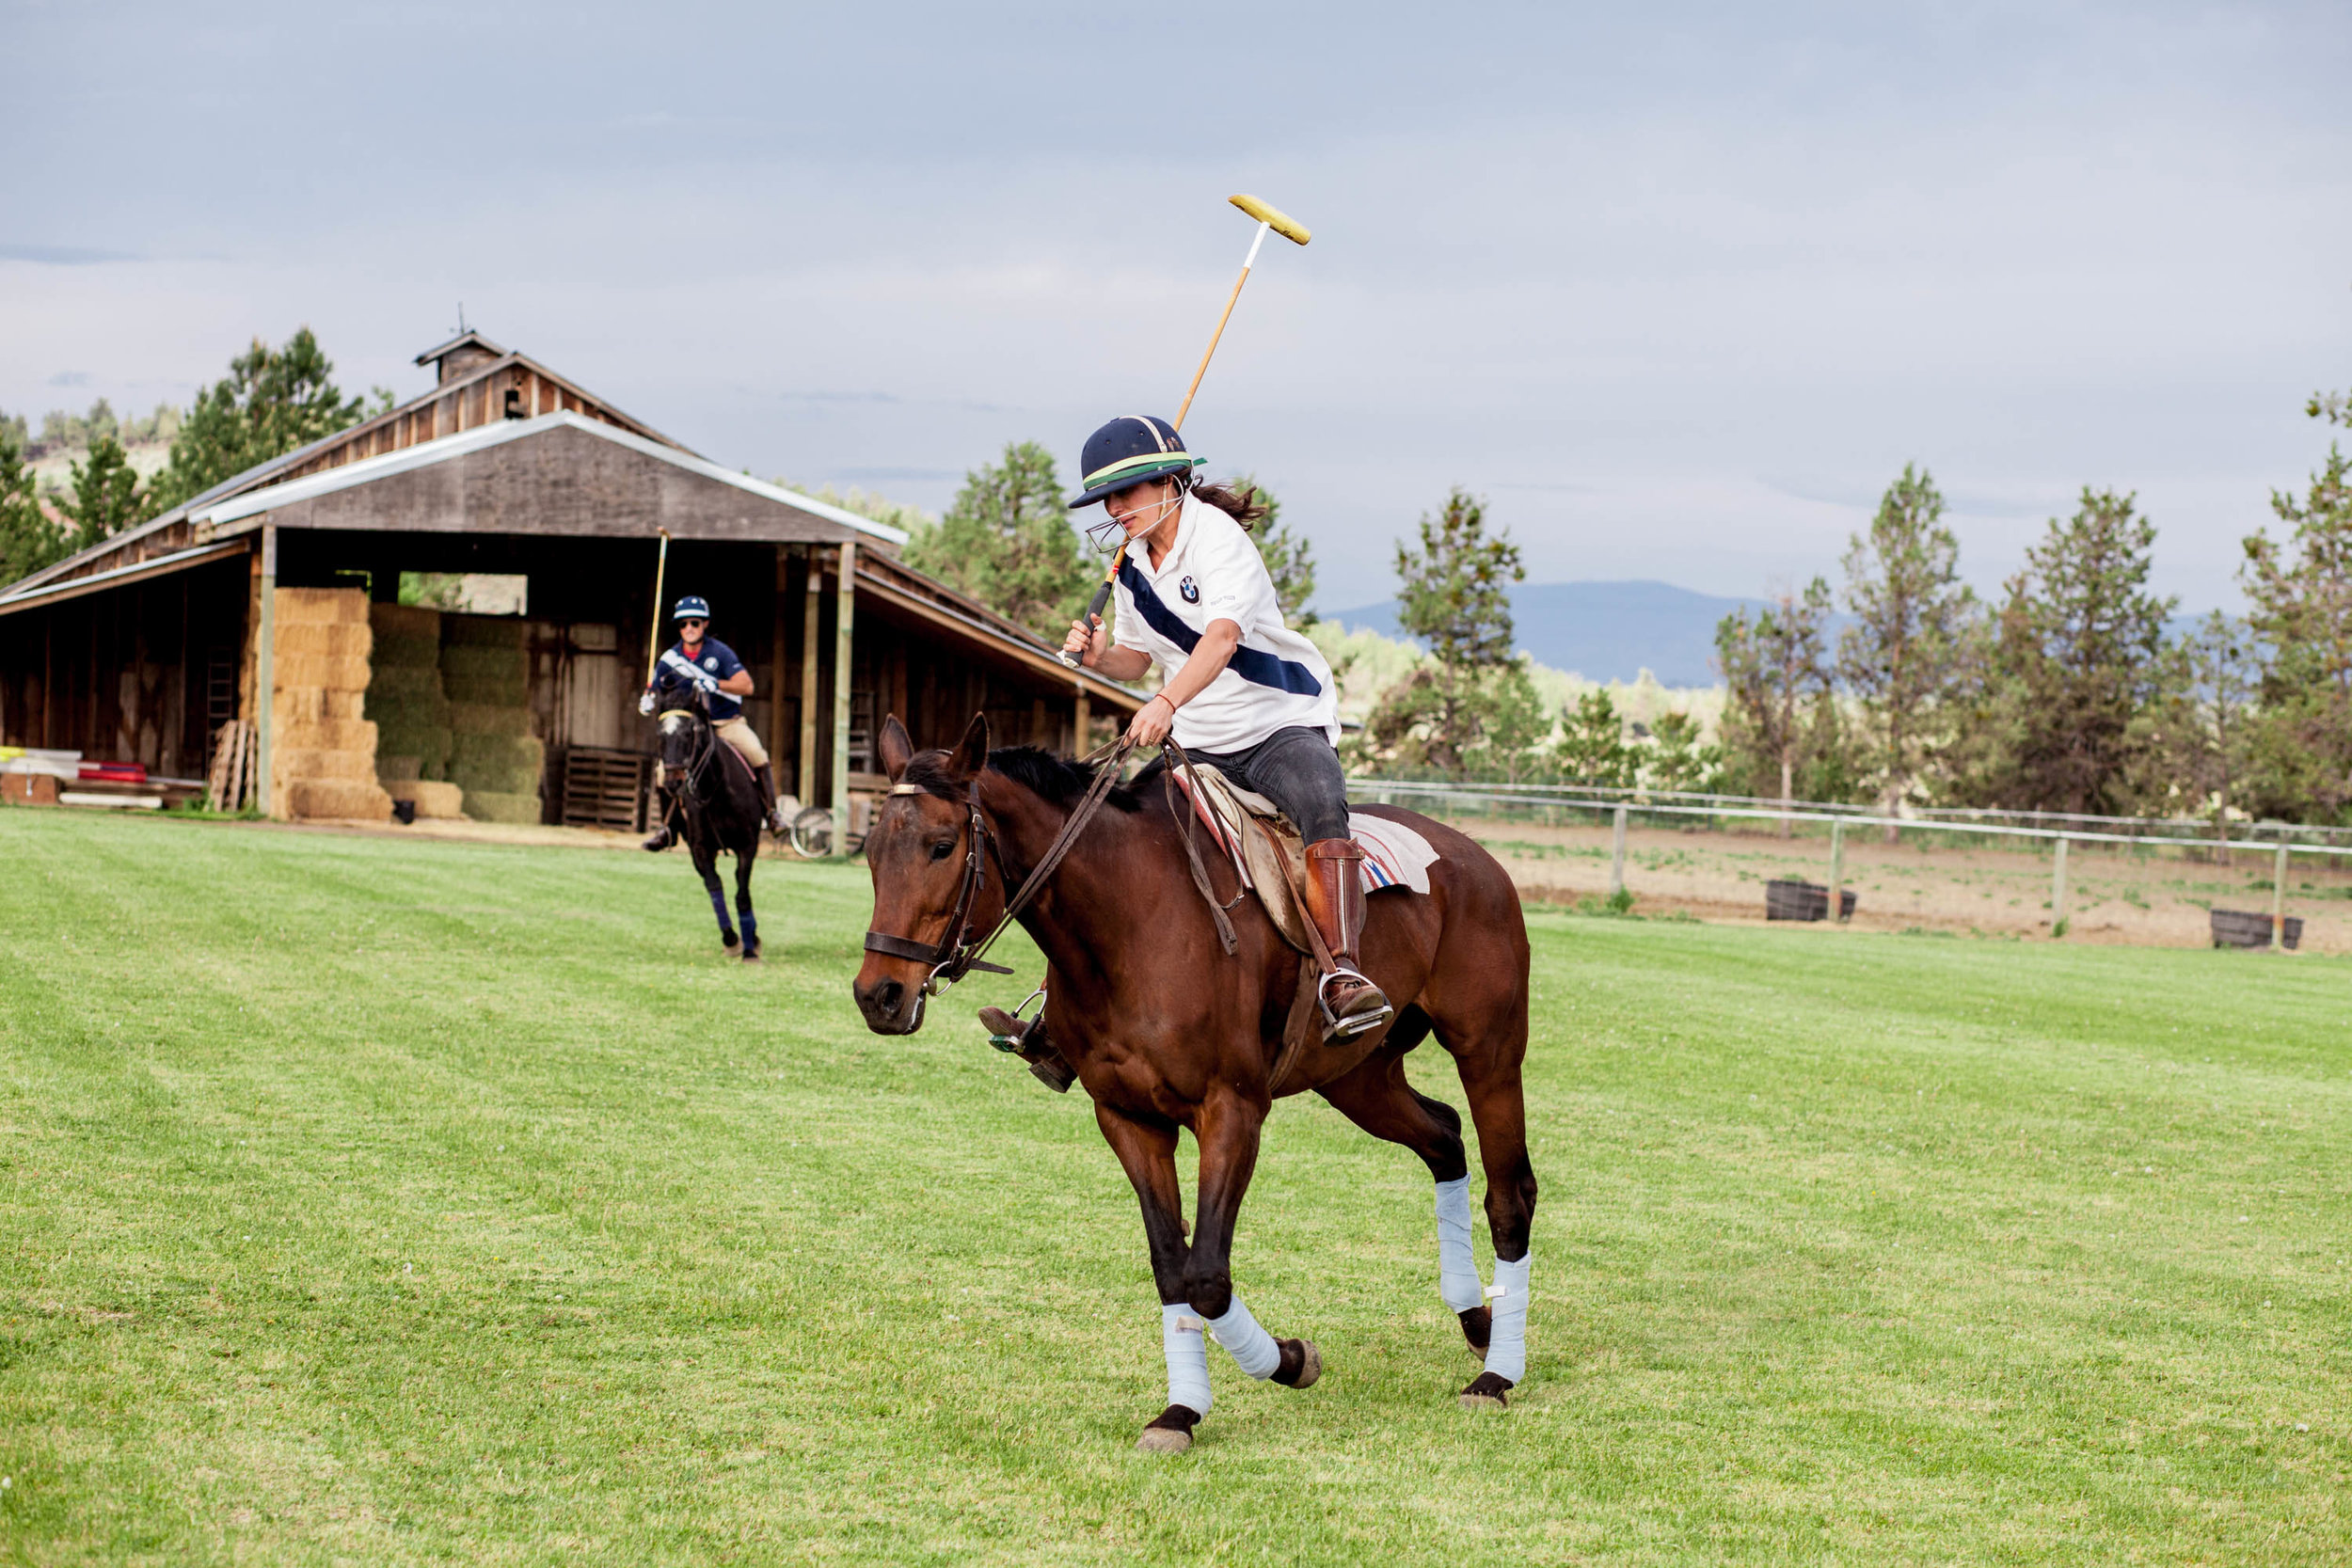 Bend_Magazine_Sisters_Cascade_Polo_Club_Dan_Harrison_by_Talia_Galvin(1of26).jpg